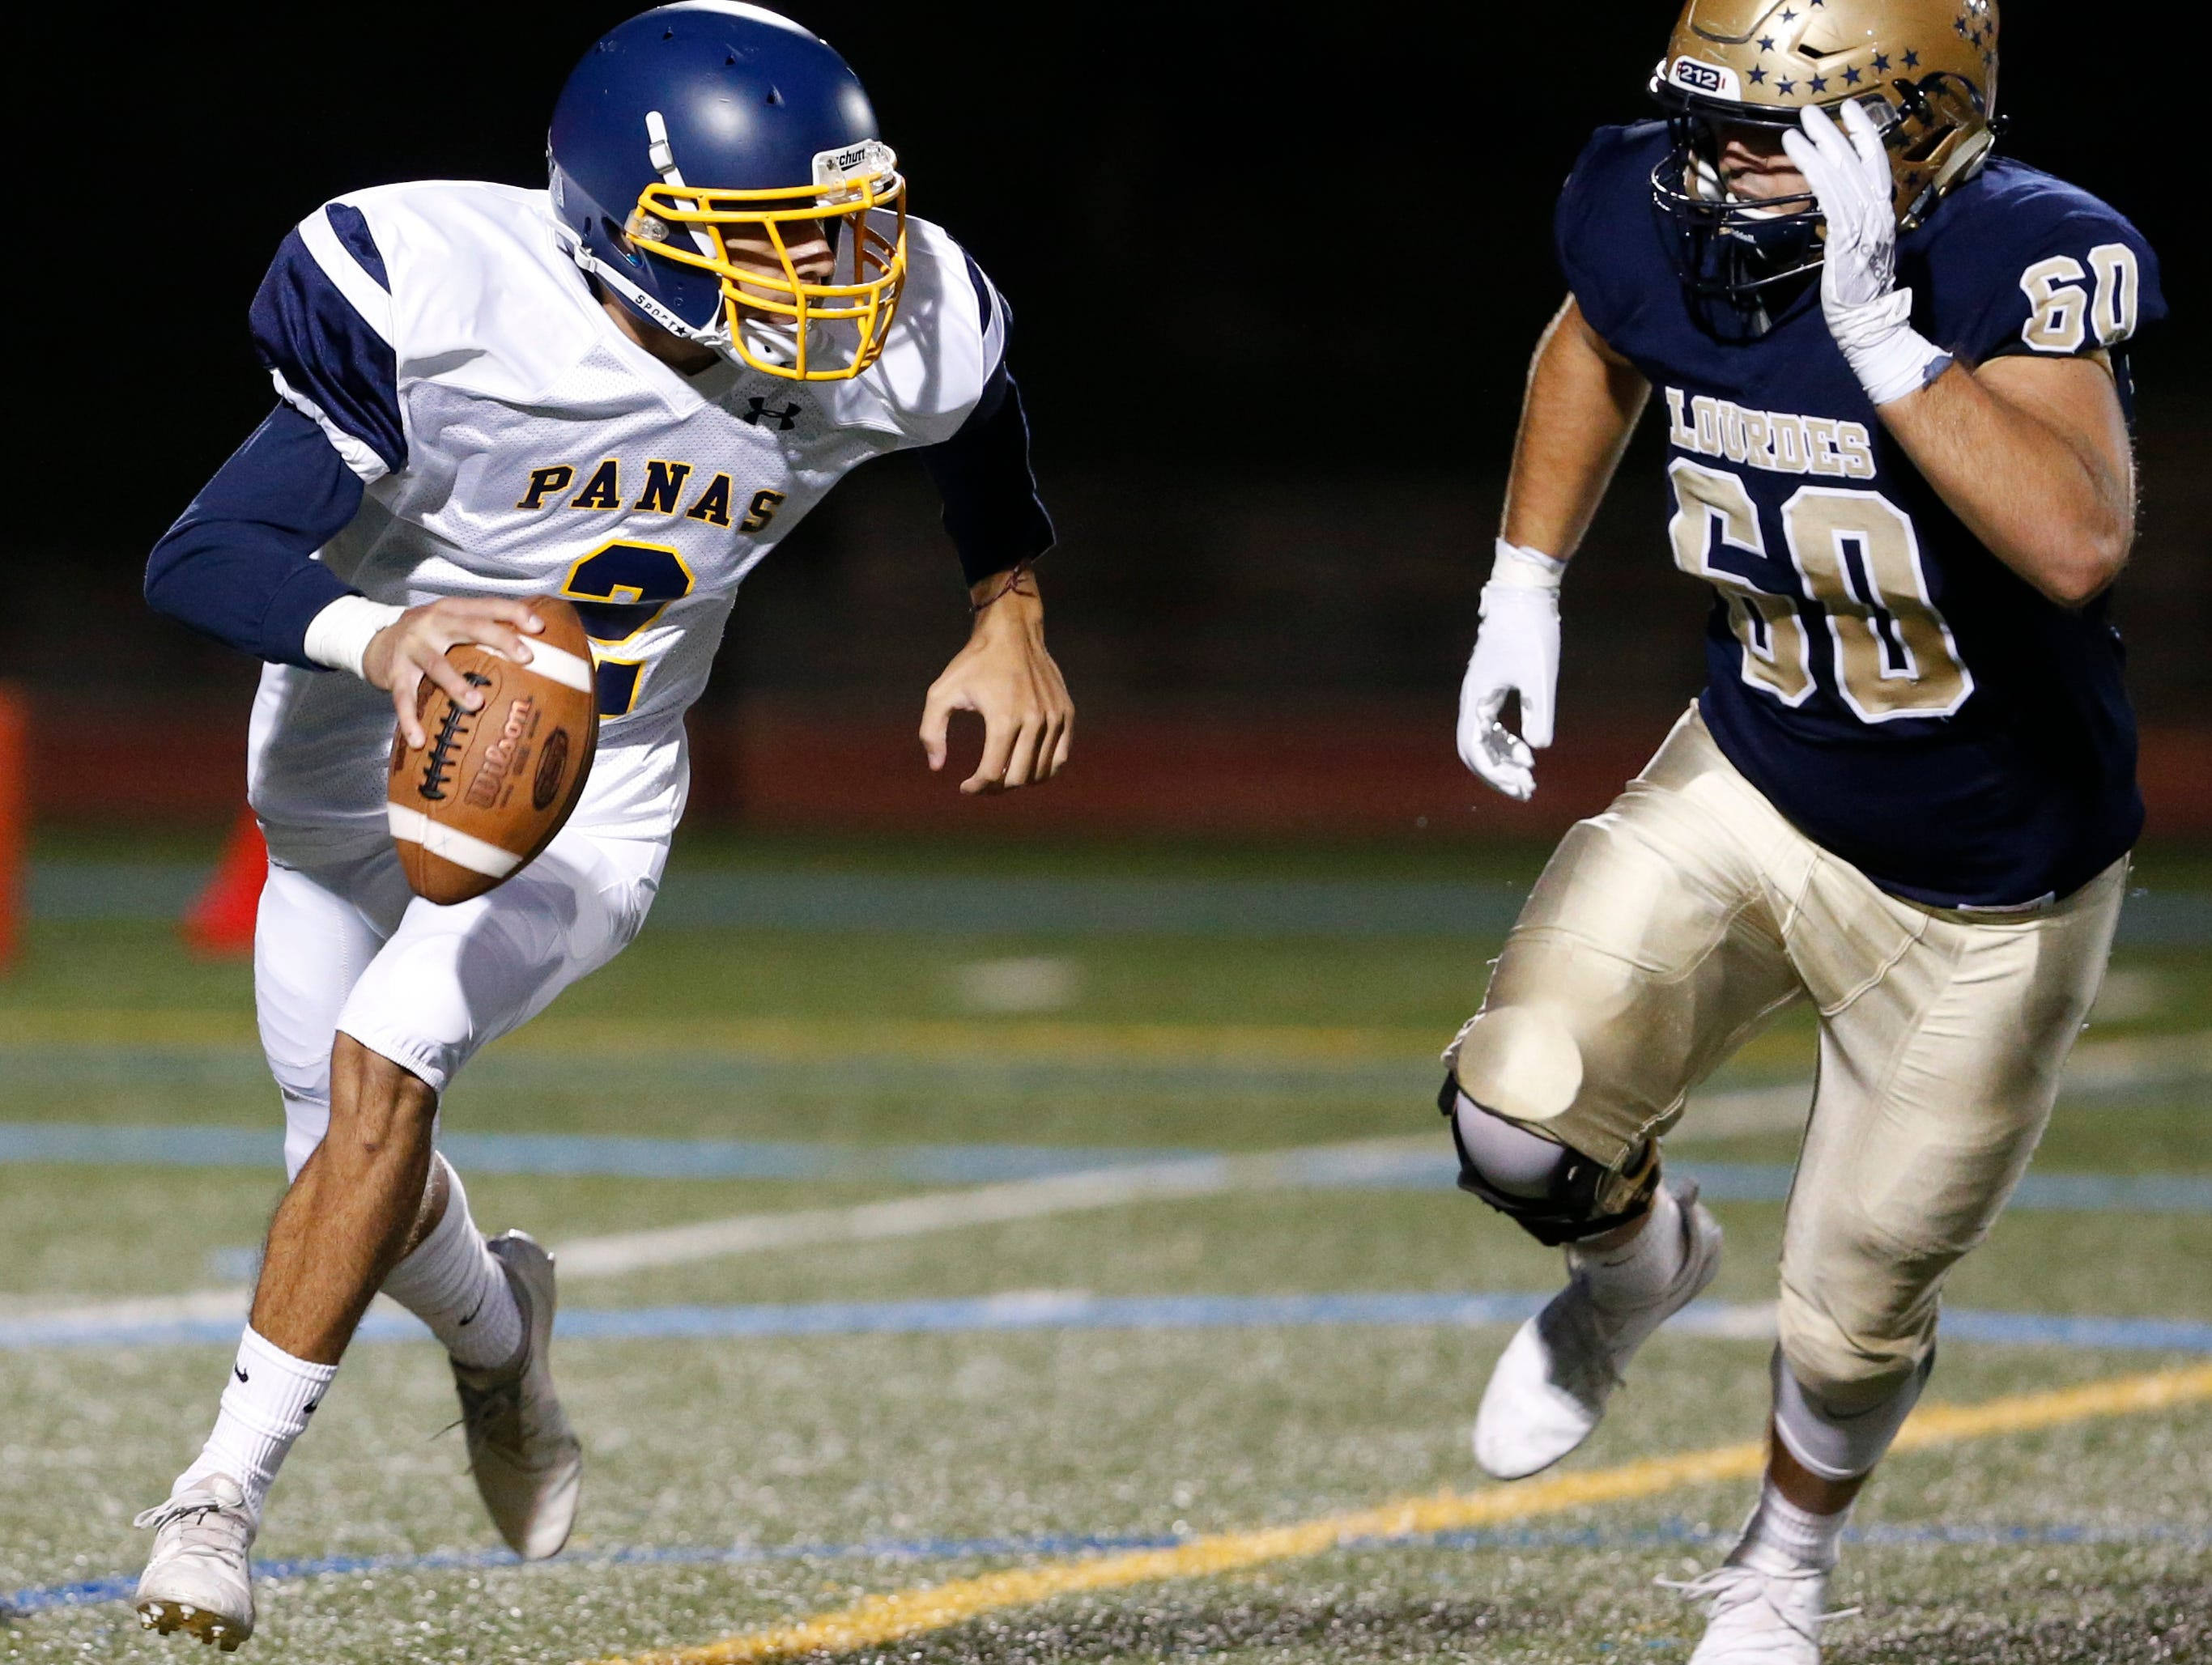 Lourdes' Nick Scalise chases down Panas' Lucas Feliciano during Friday night's game at Lourdes on Sept. 21, 2018.